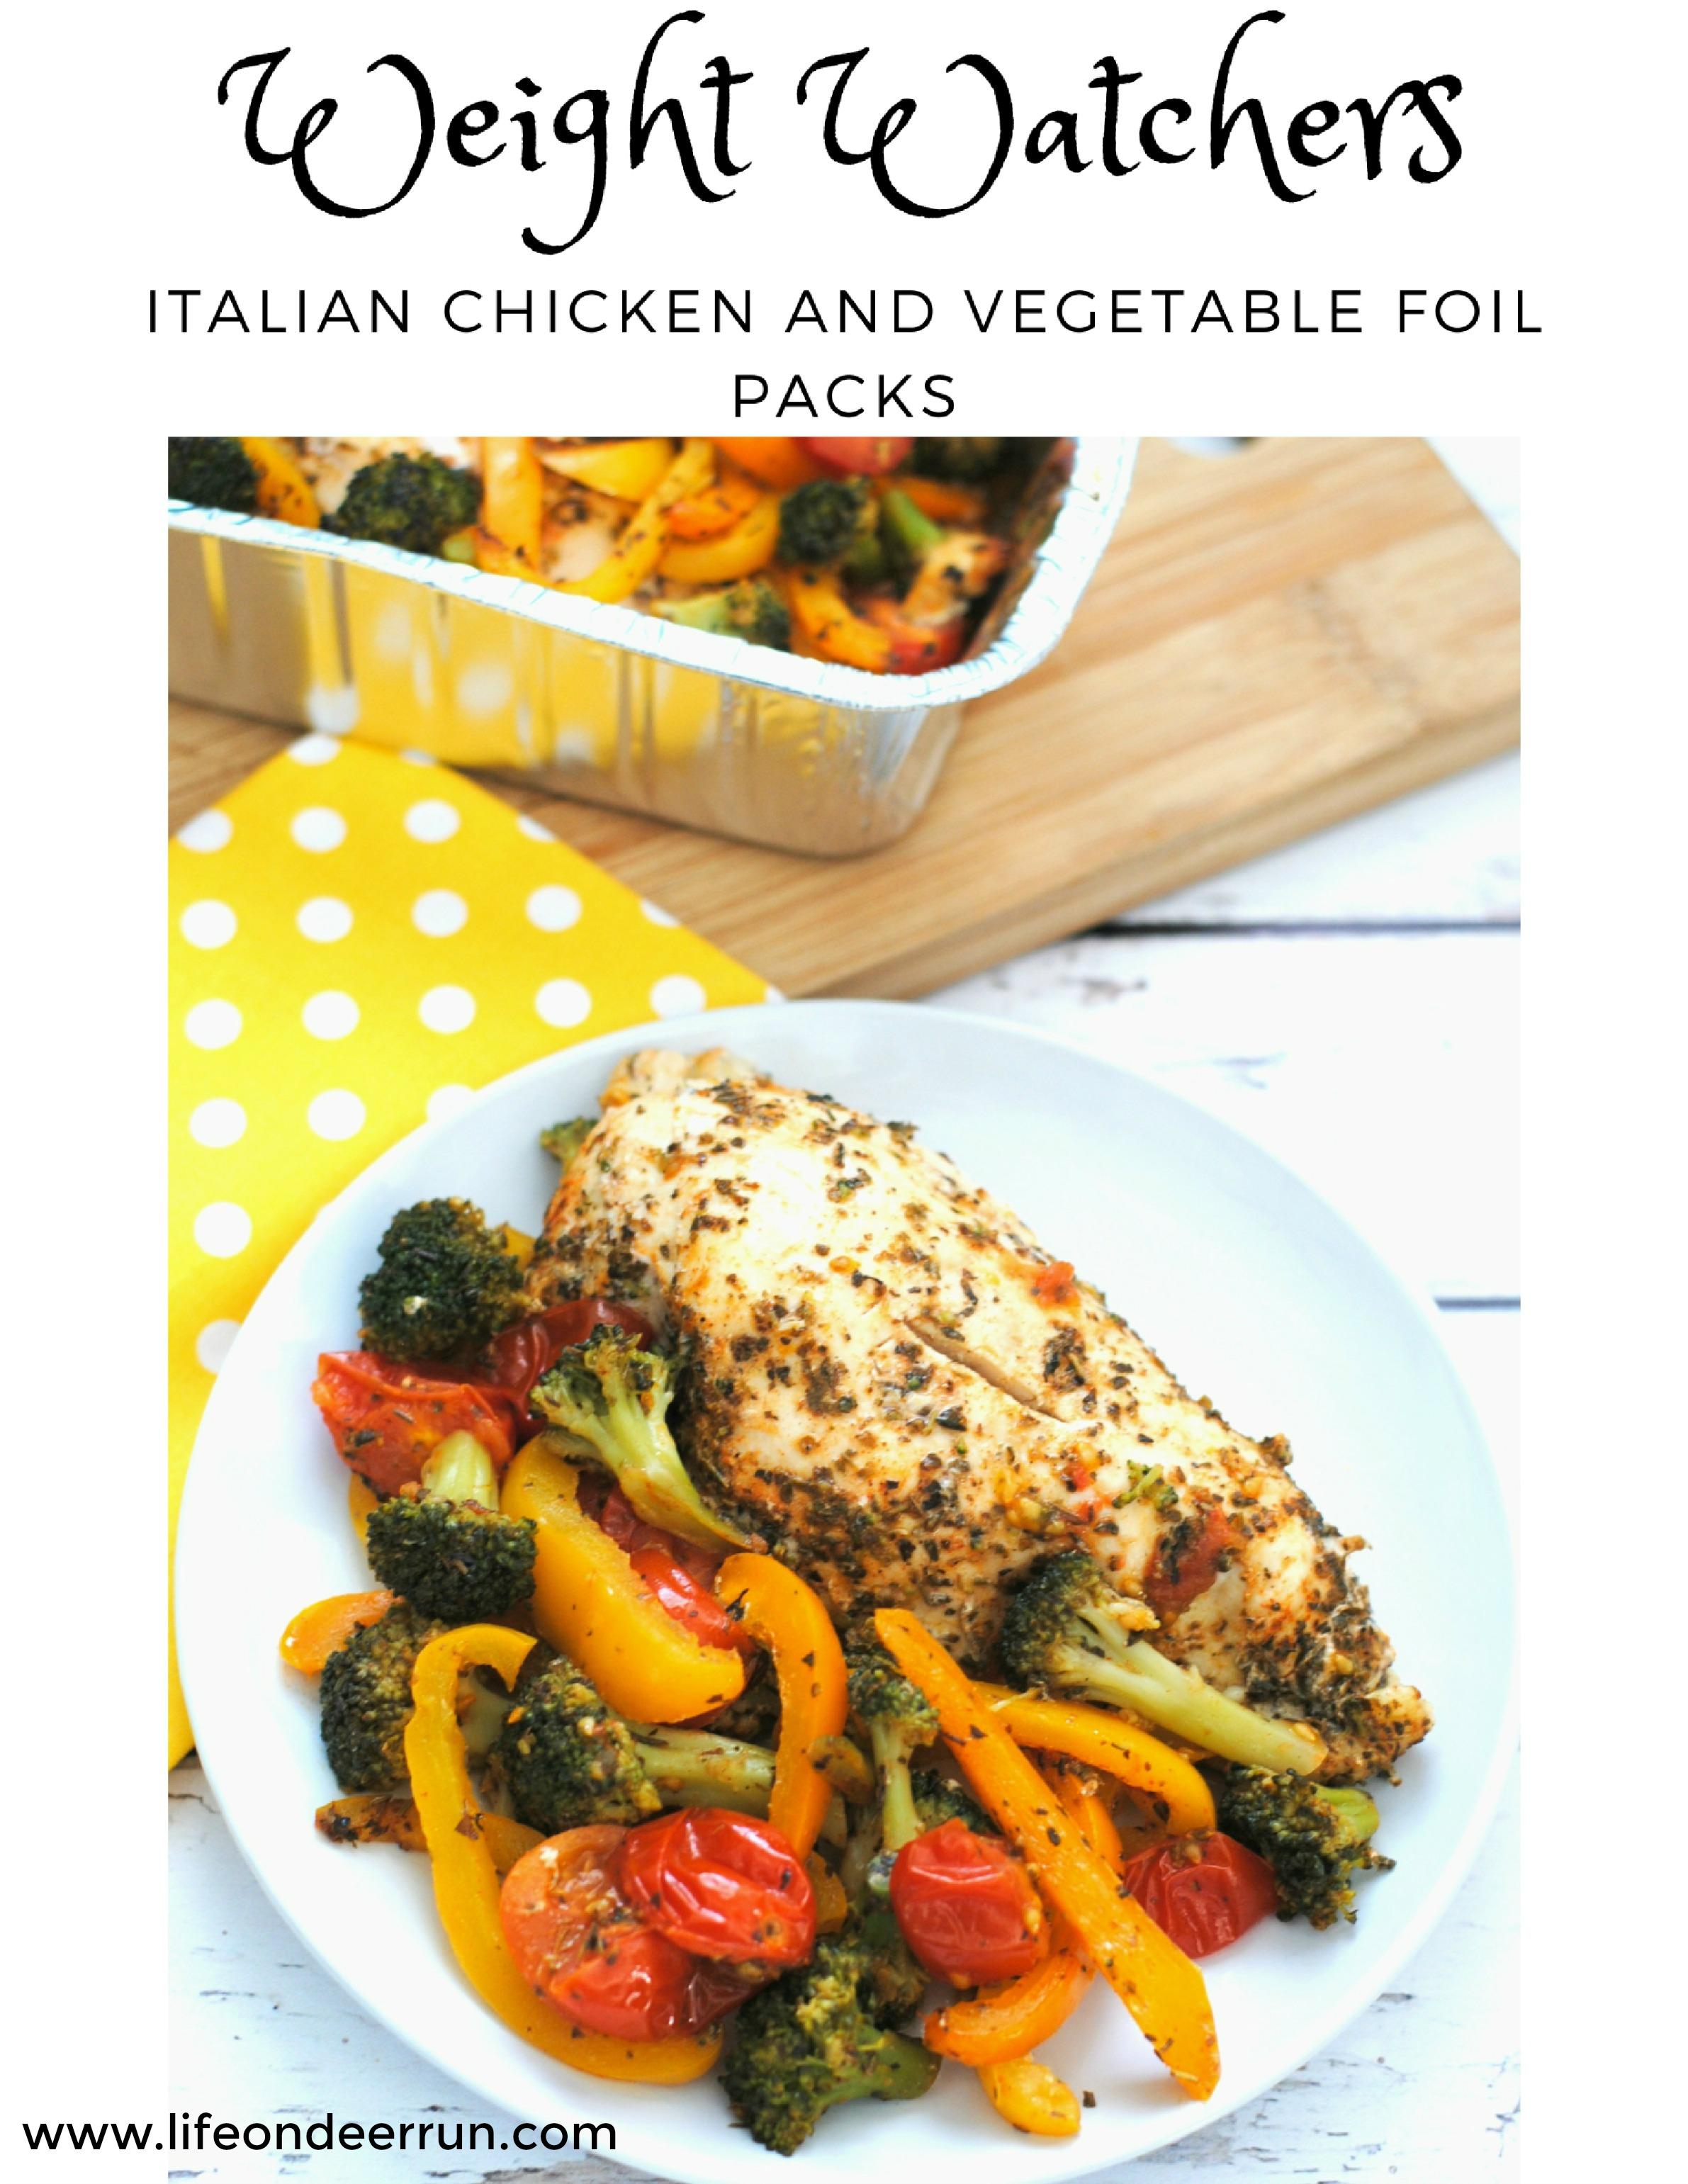 Weight Watchers Italian Chicken and Vegetable Foil Packs